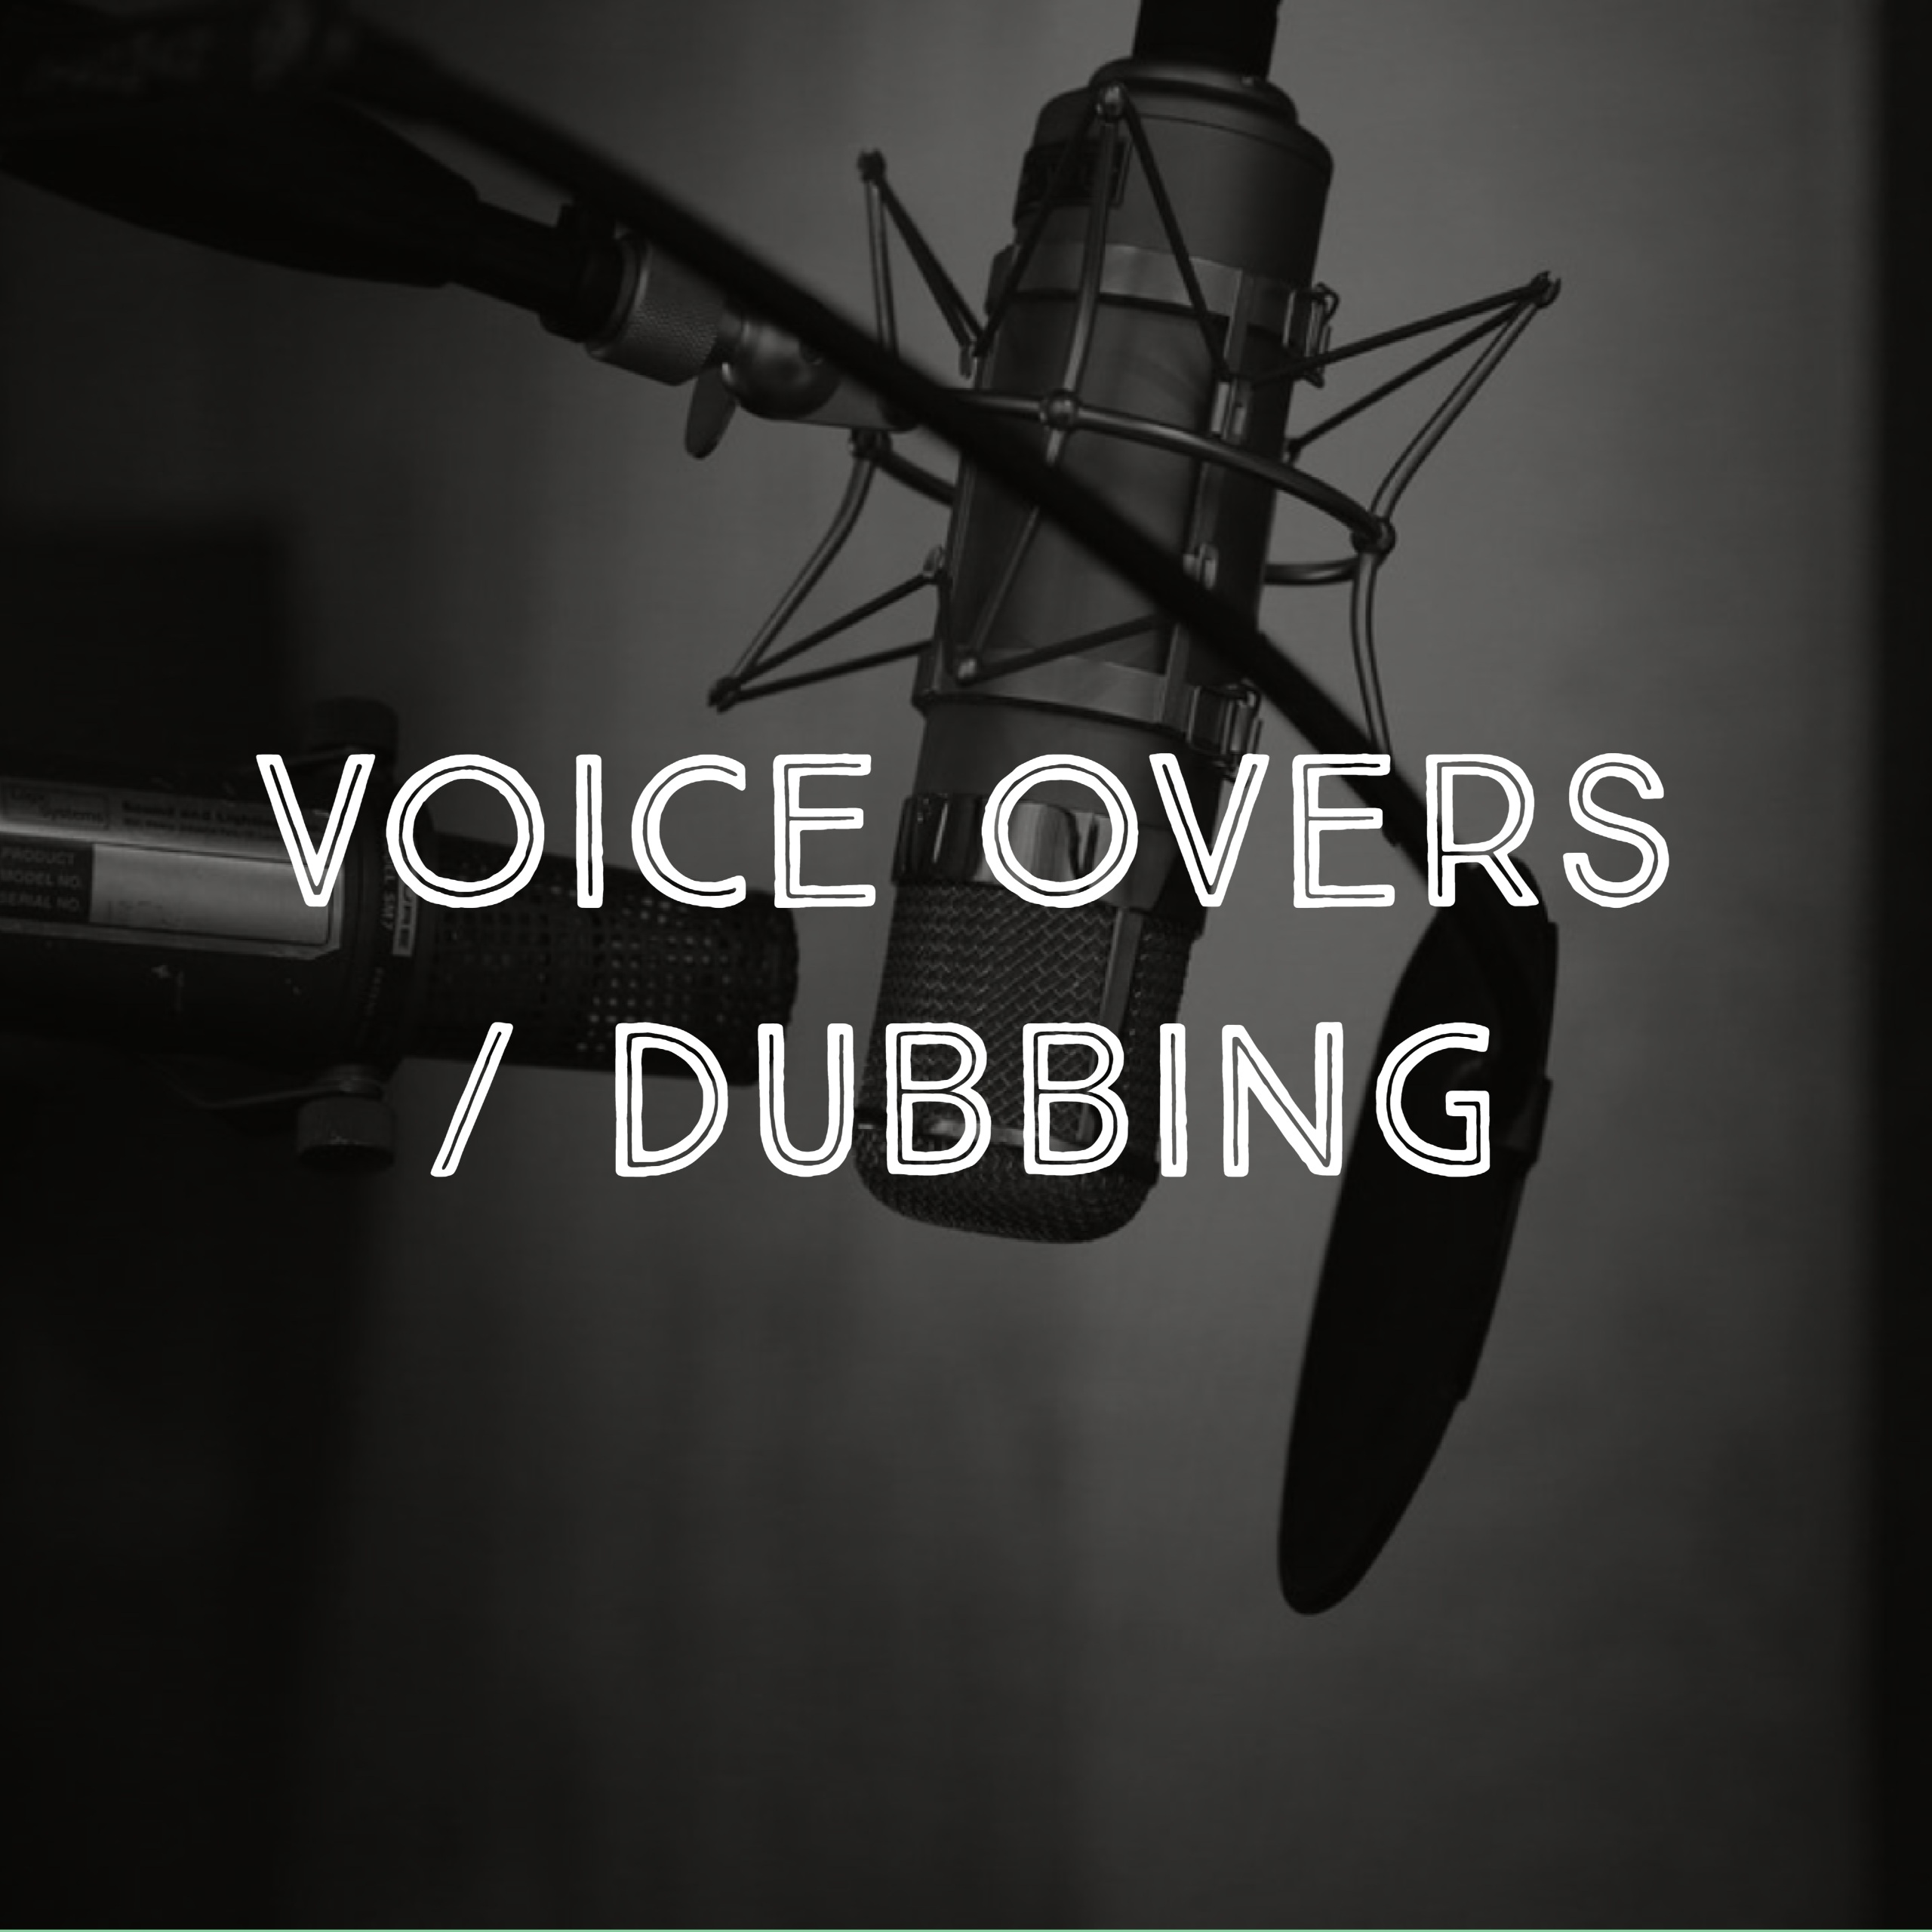 Voice Overs / Dubbing